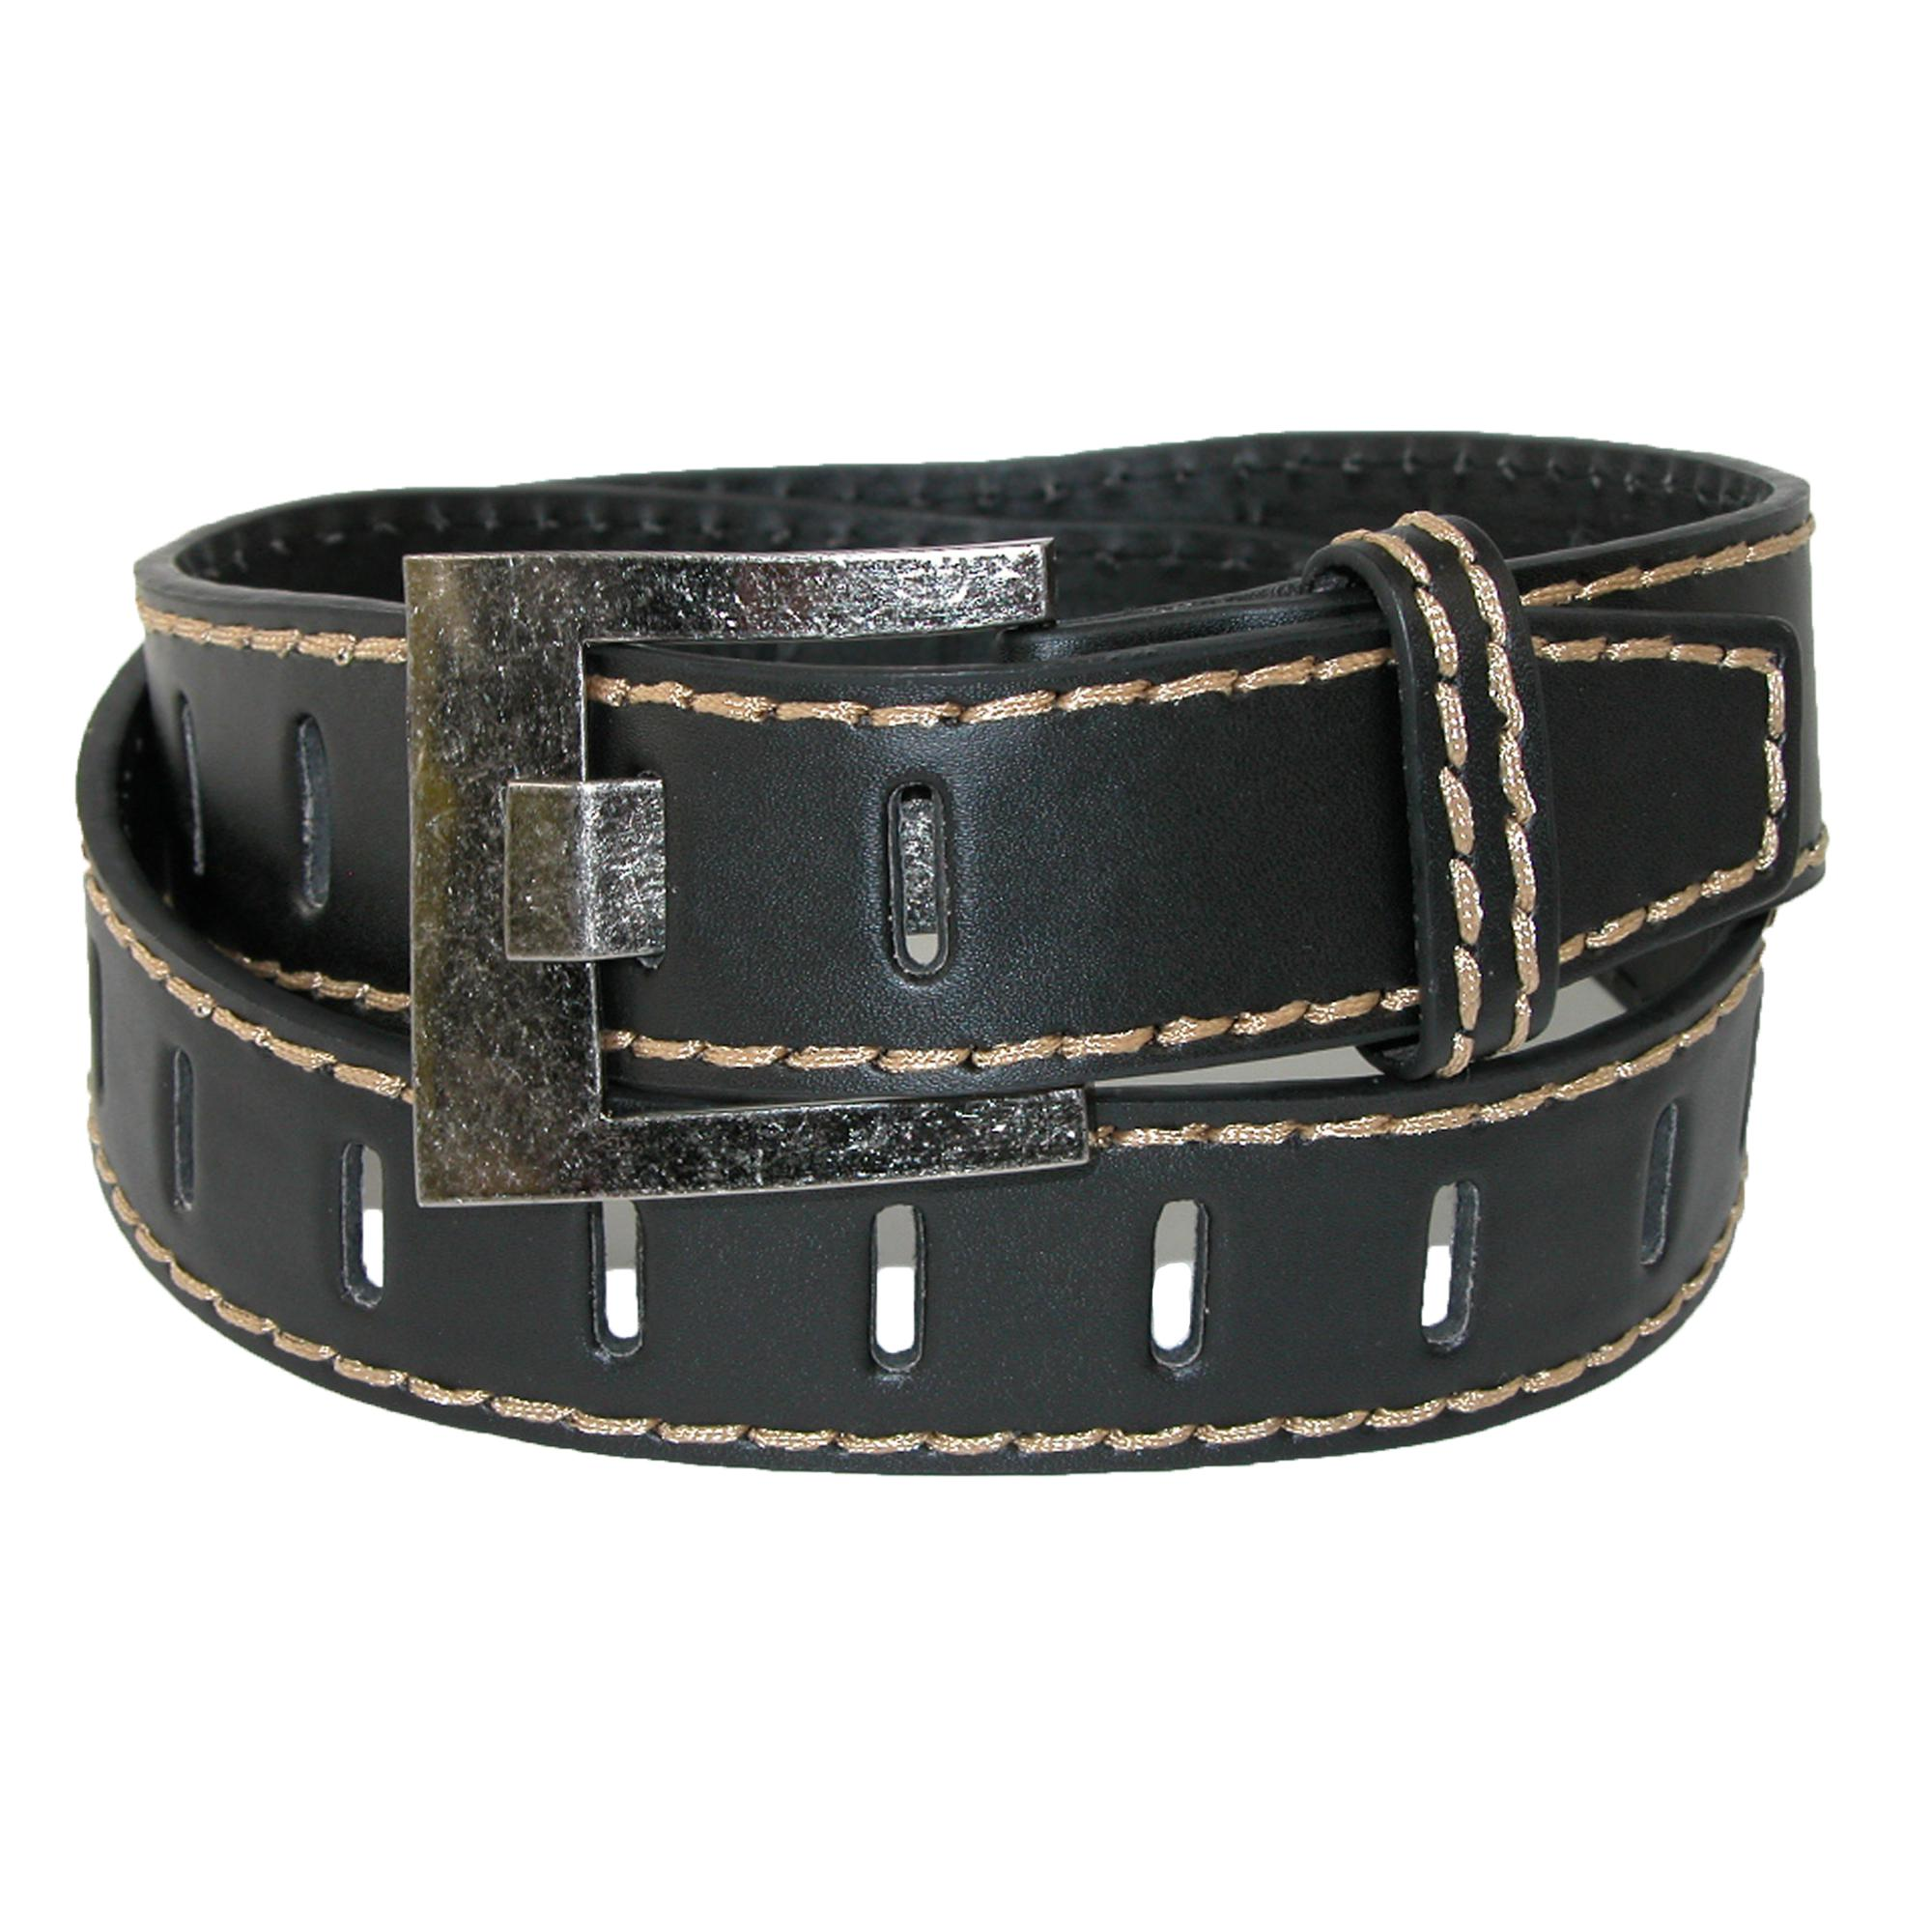 Ctm Mens Leather 1 1/2 Inch Perforated Jean Belt